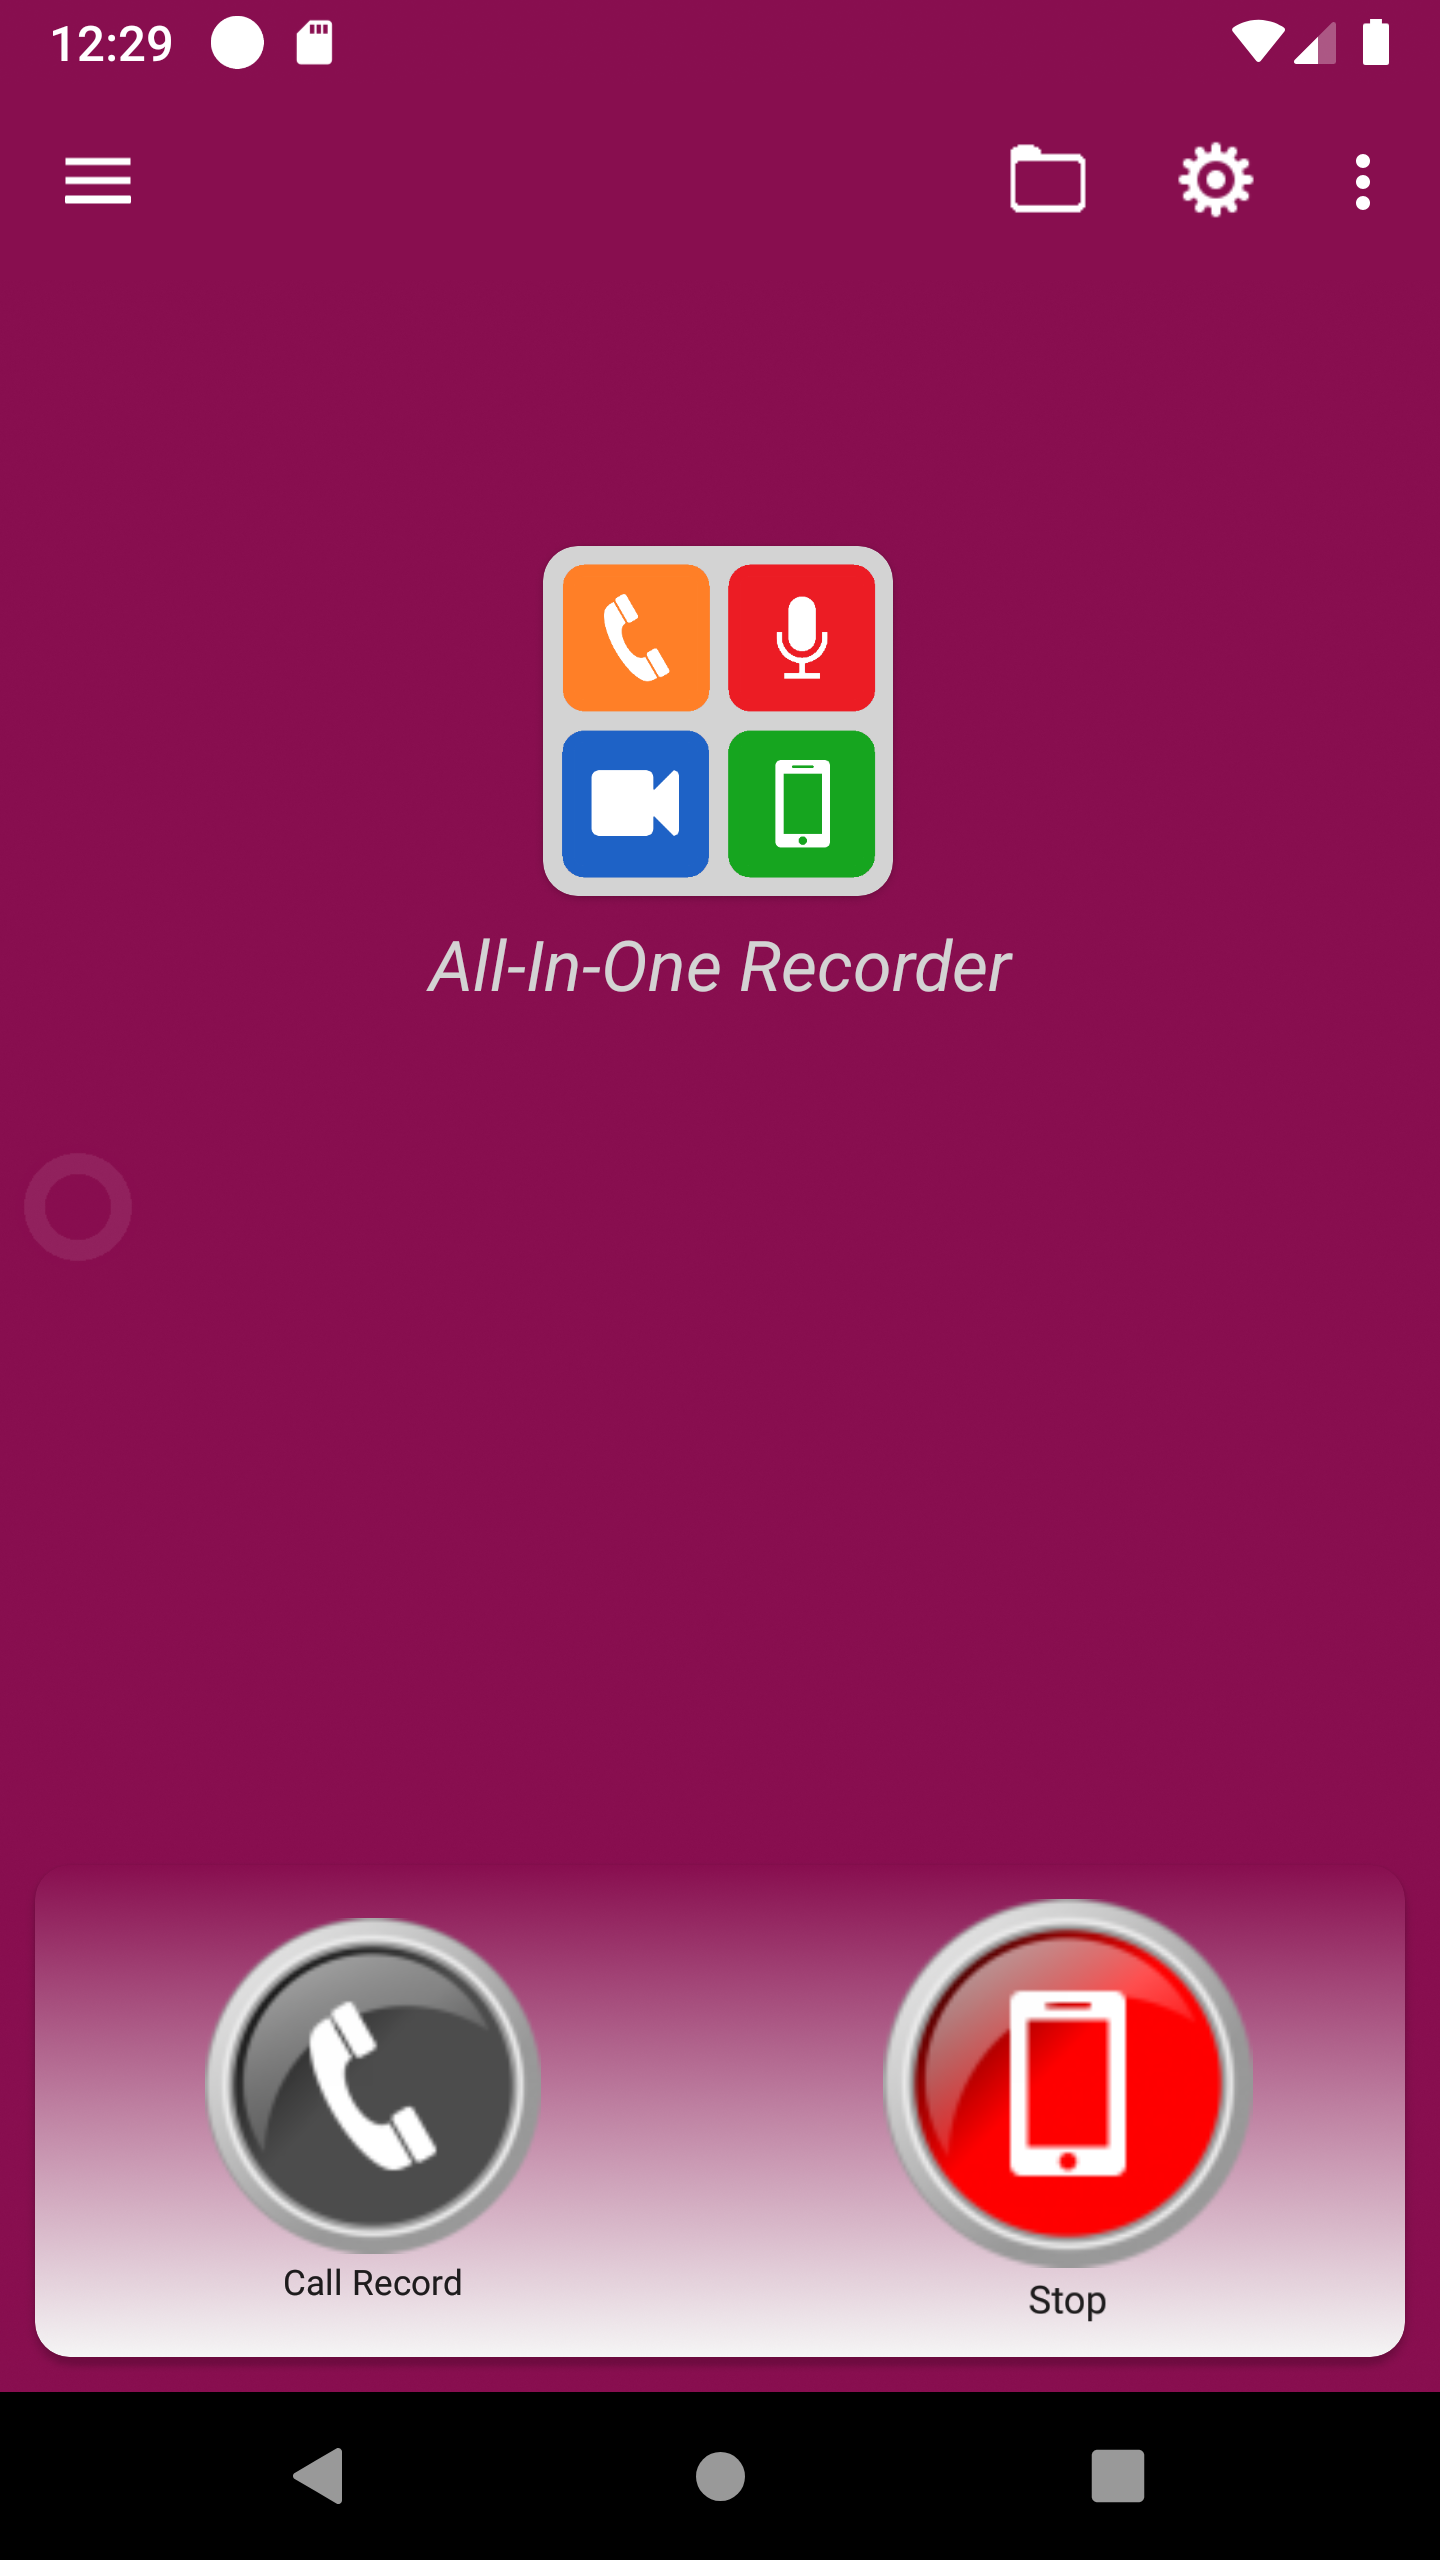 All-In-One Recorder